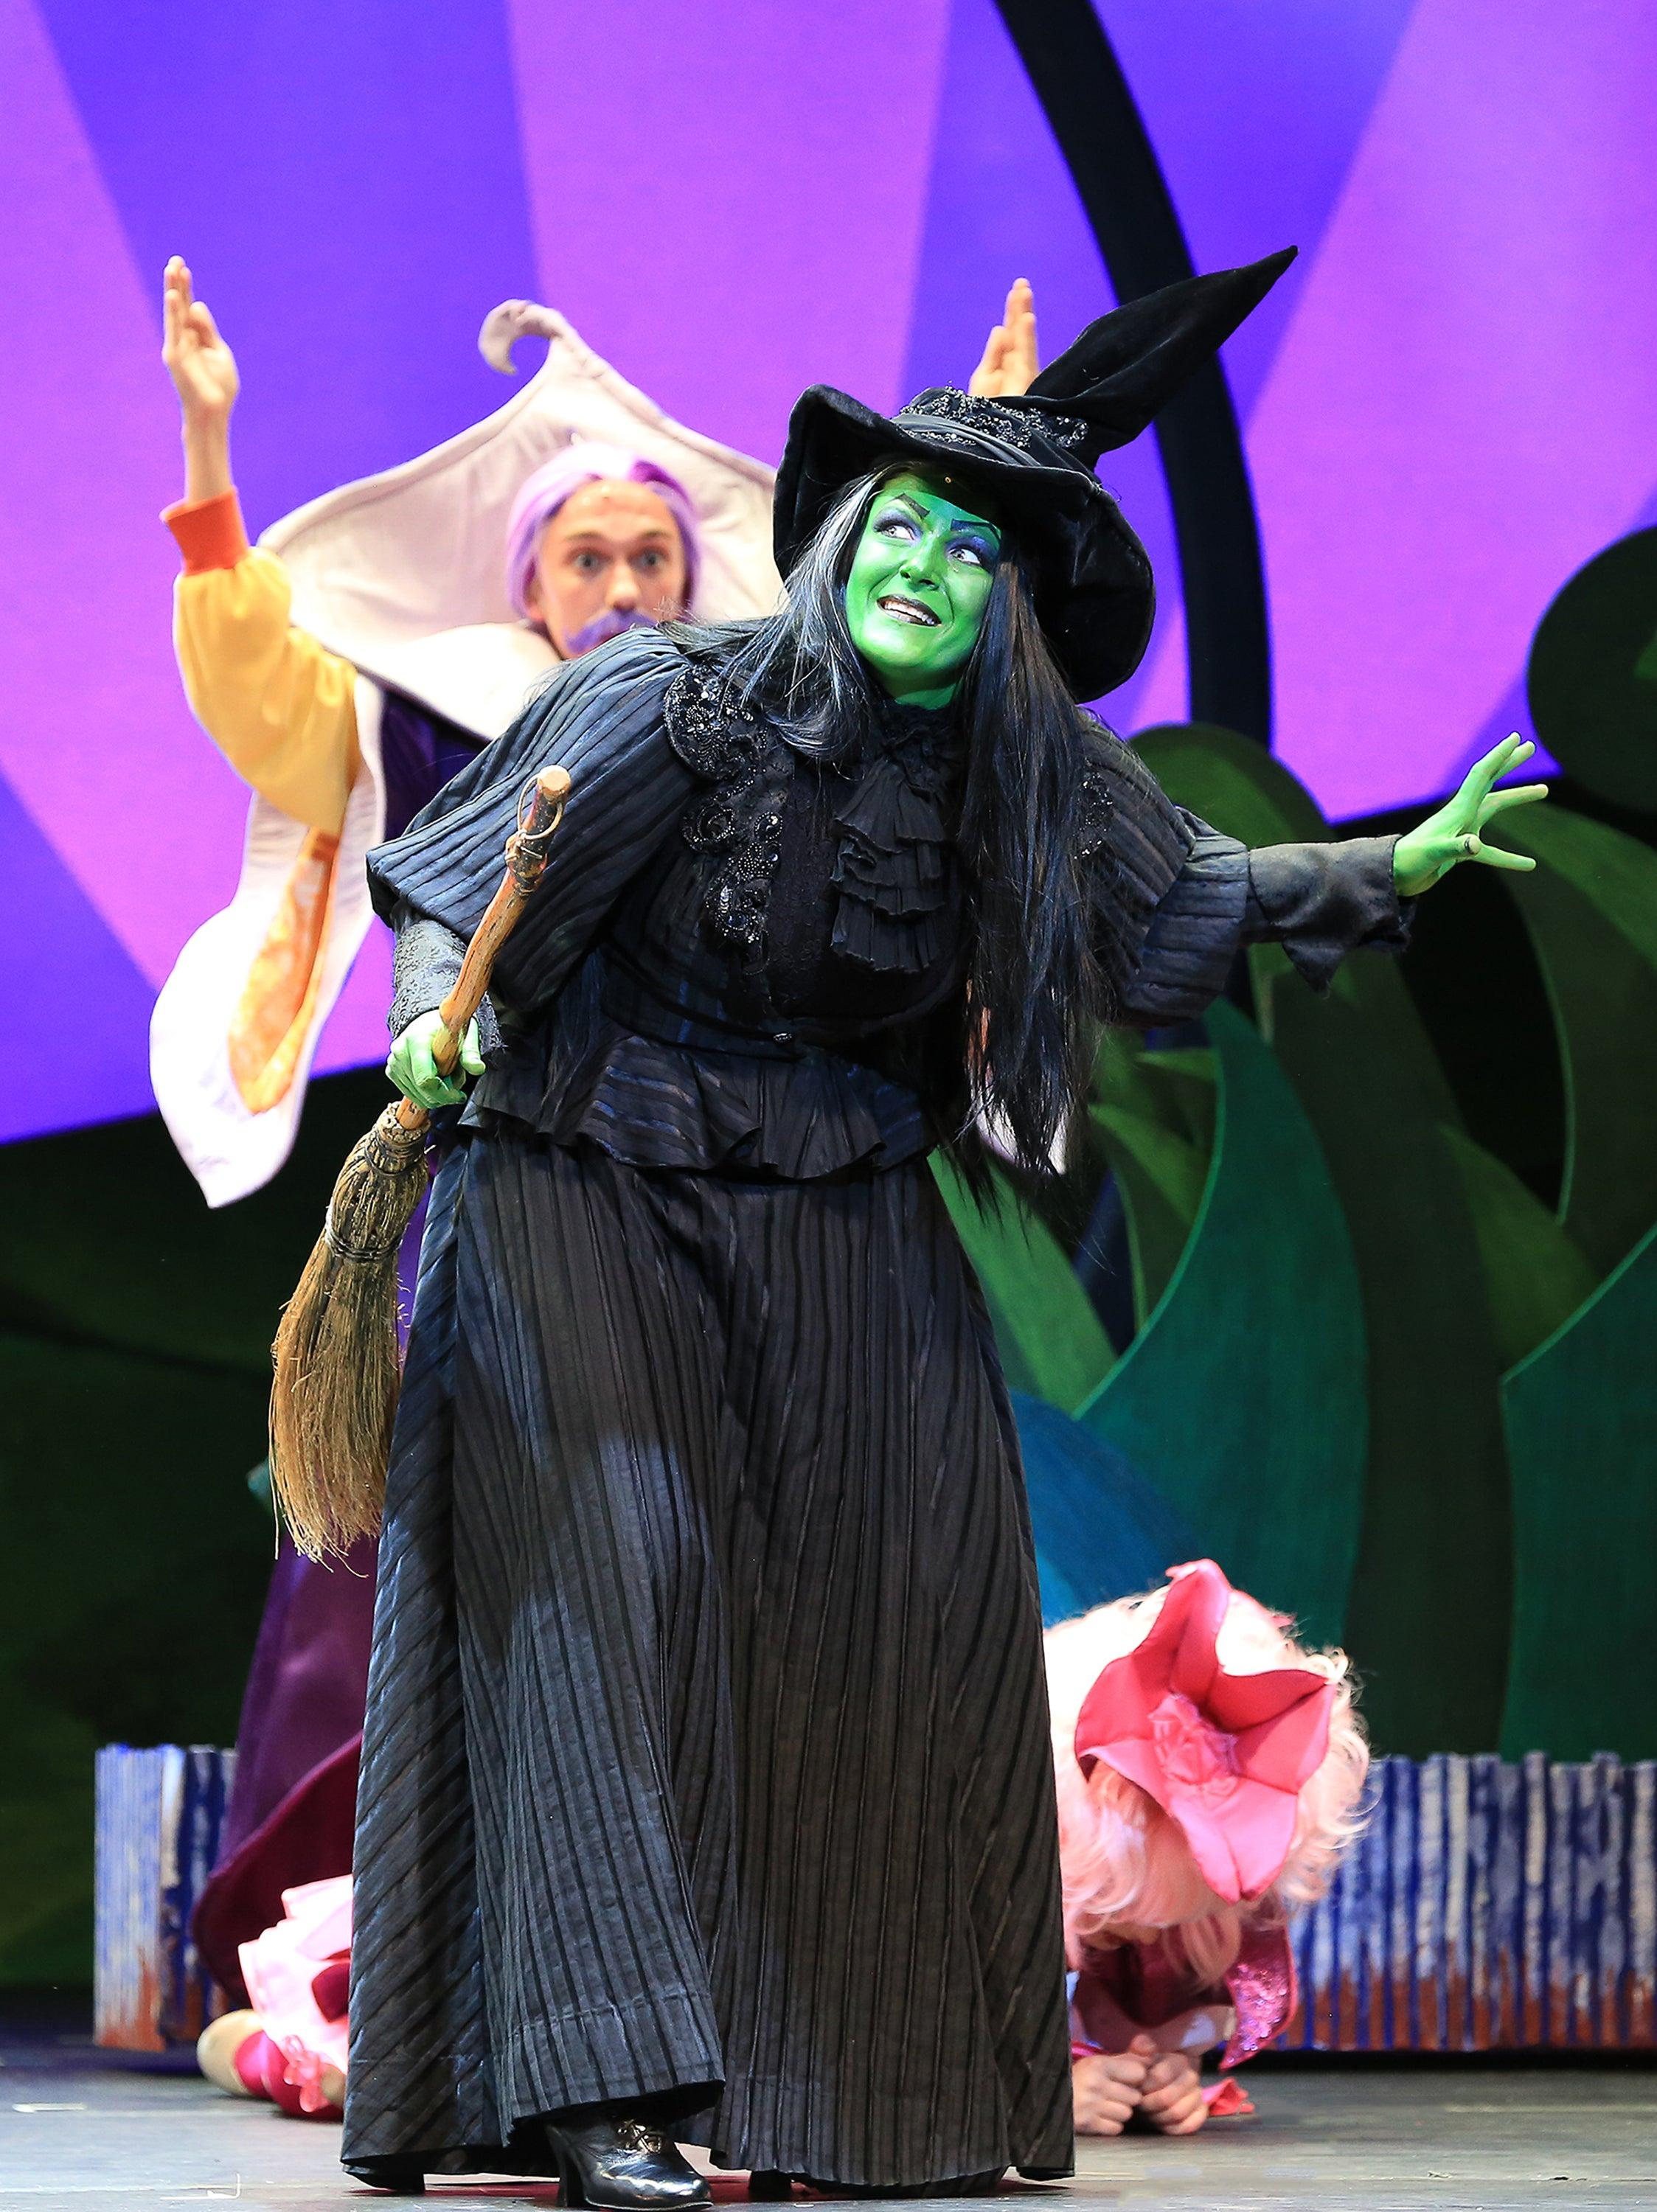 The wizard of oz wagner no l - Dayton home and garden show 2017 ...